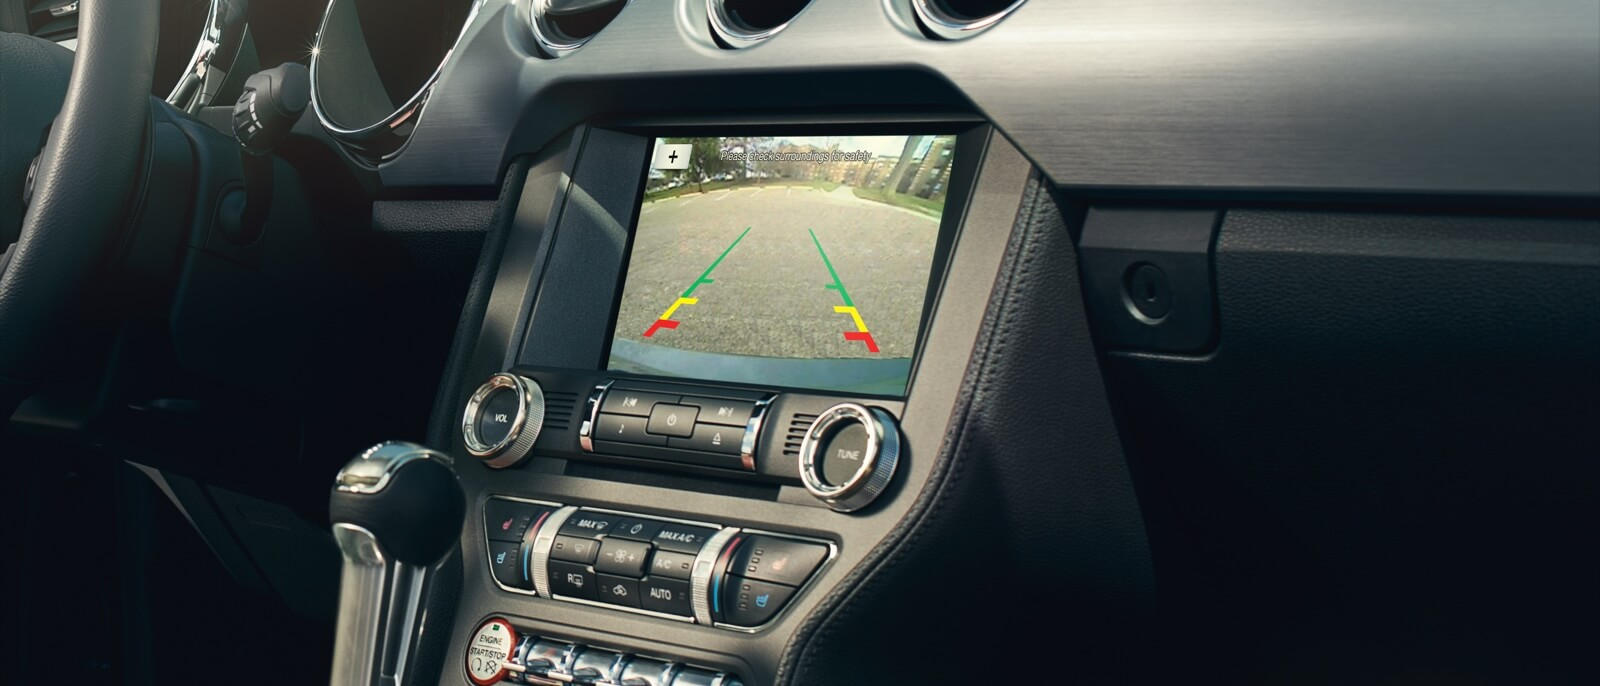 2016 Ford Mustang GT interior features